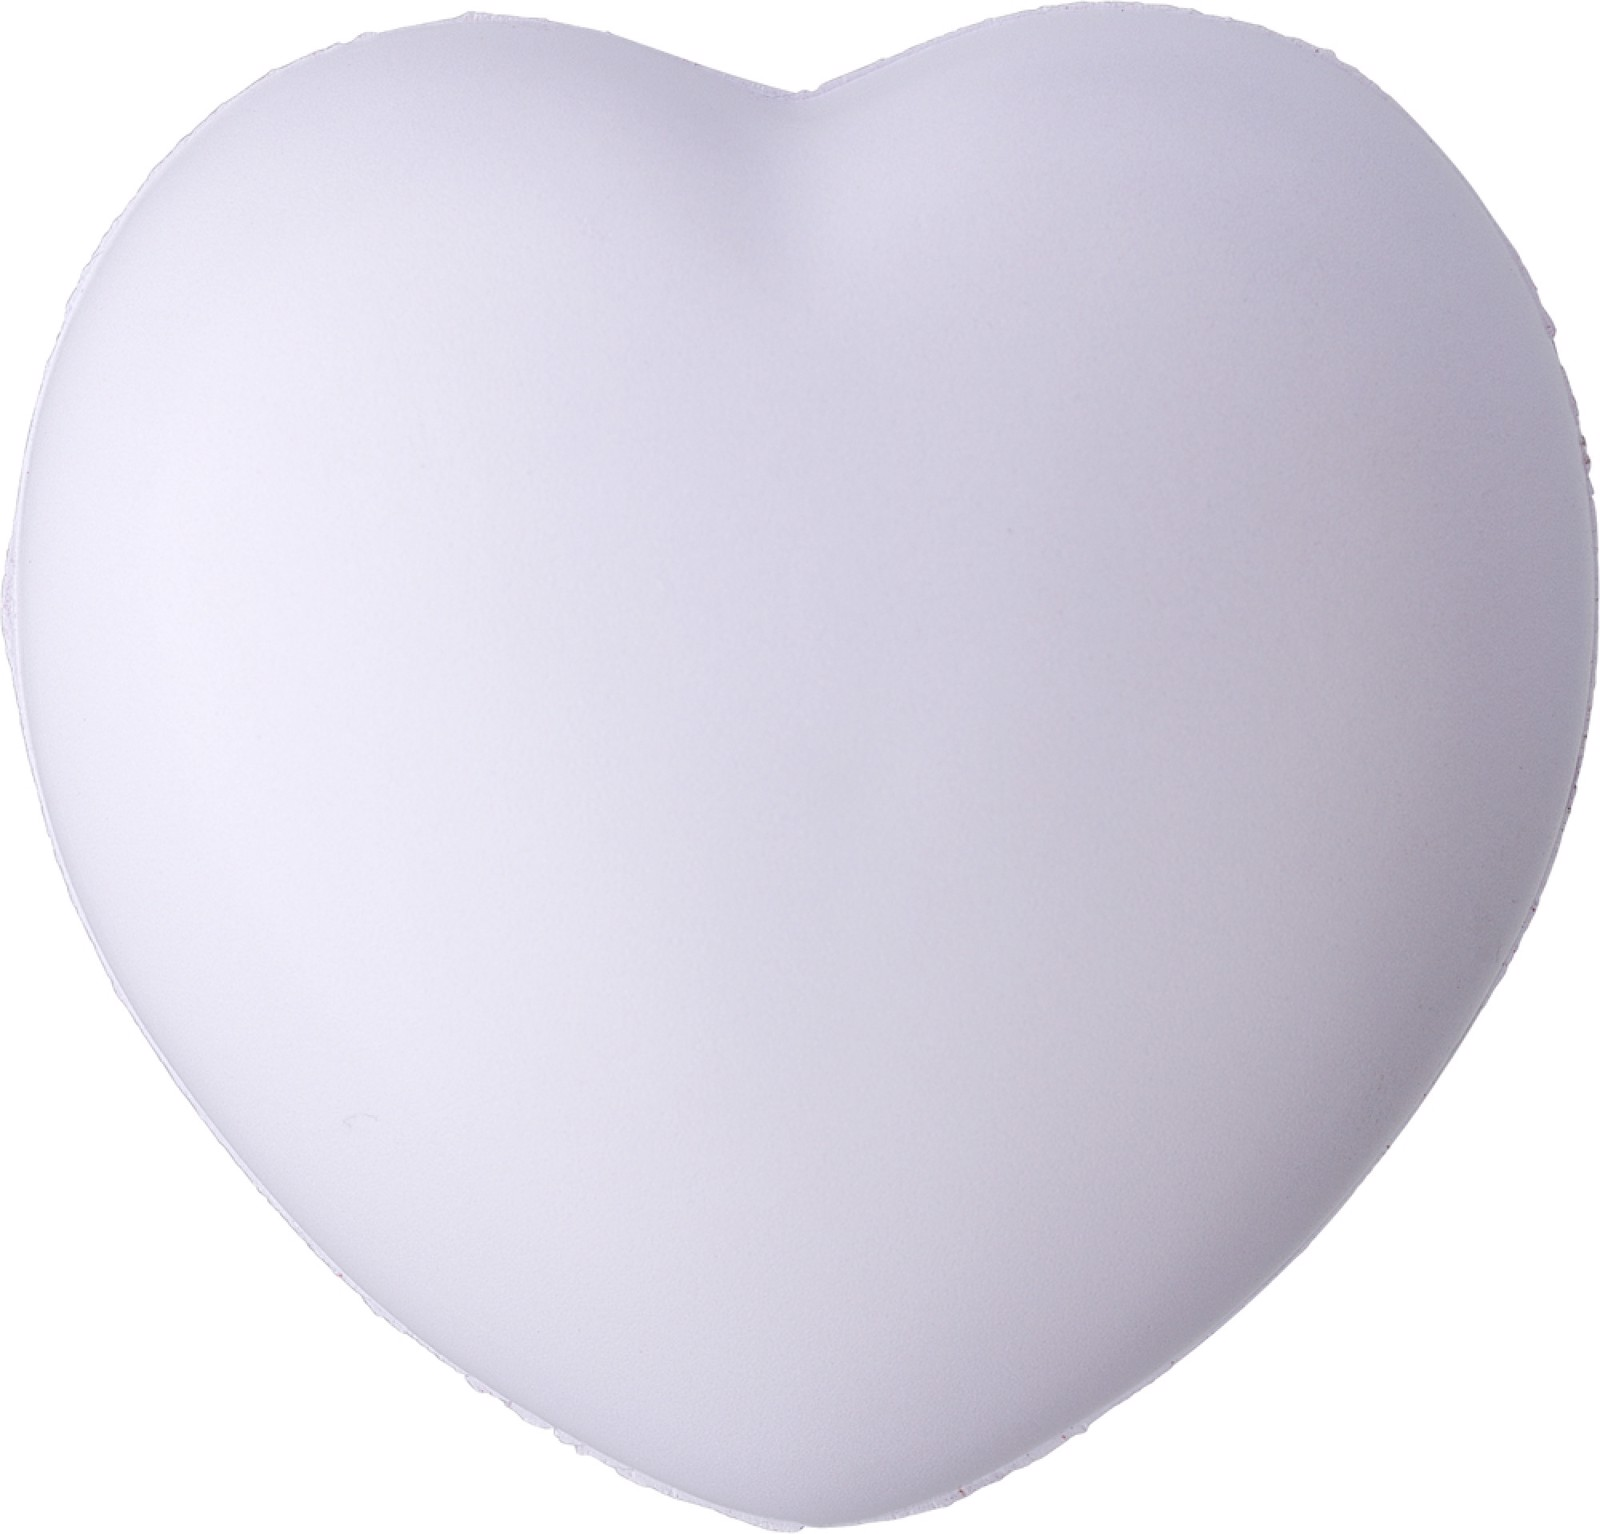 PU foam heart - White